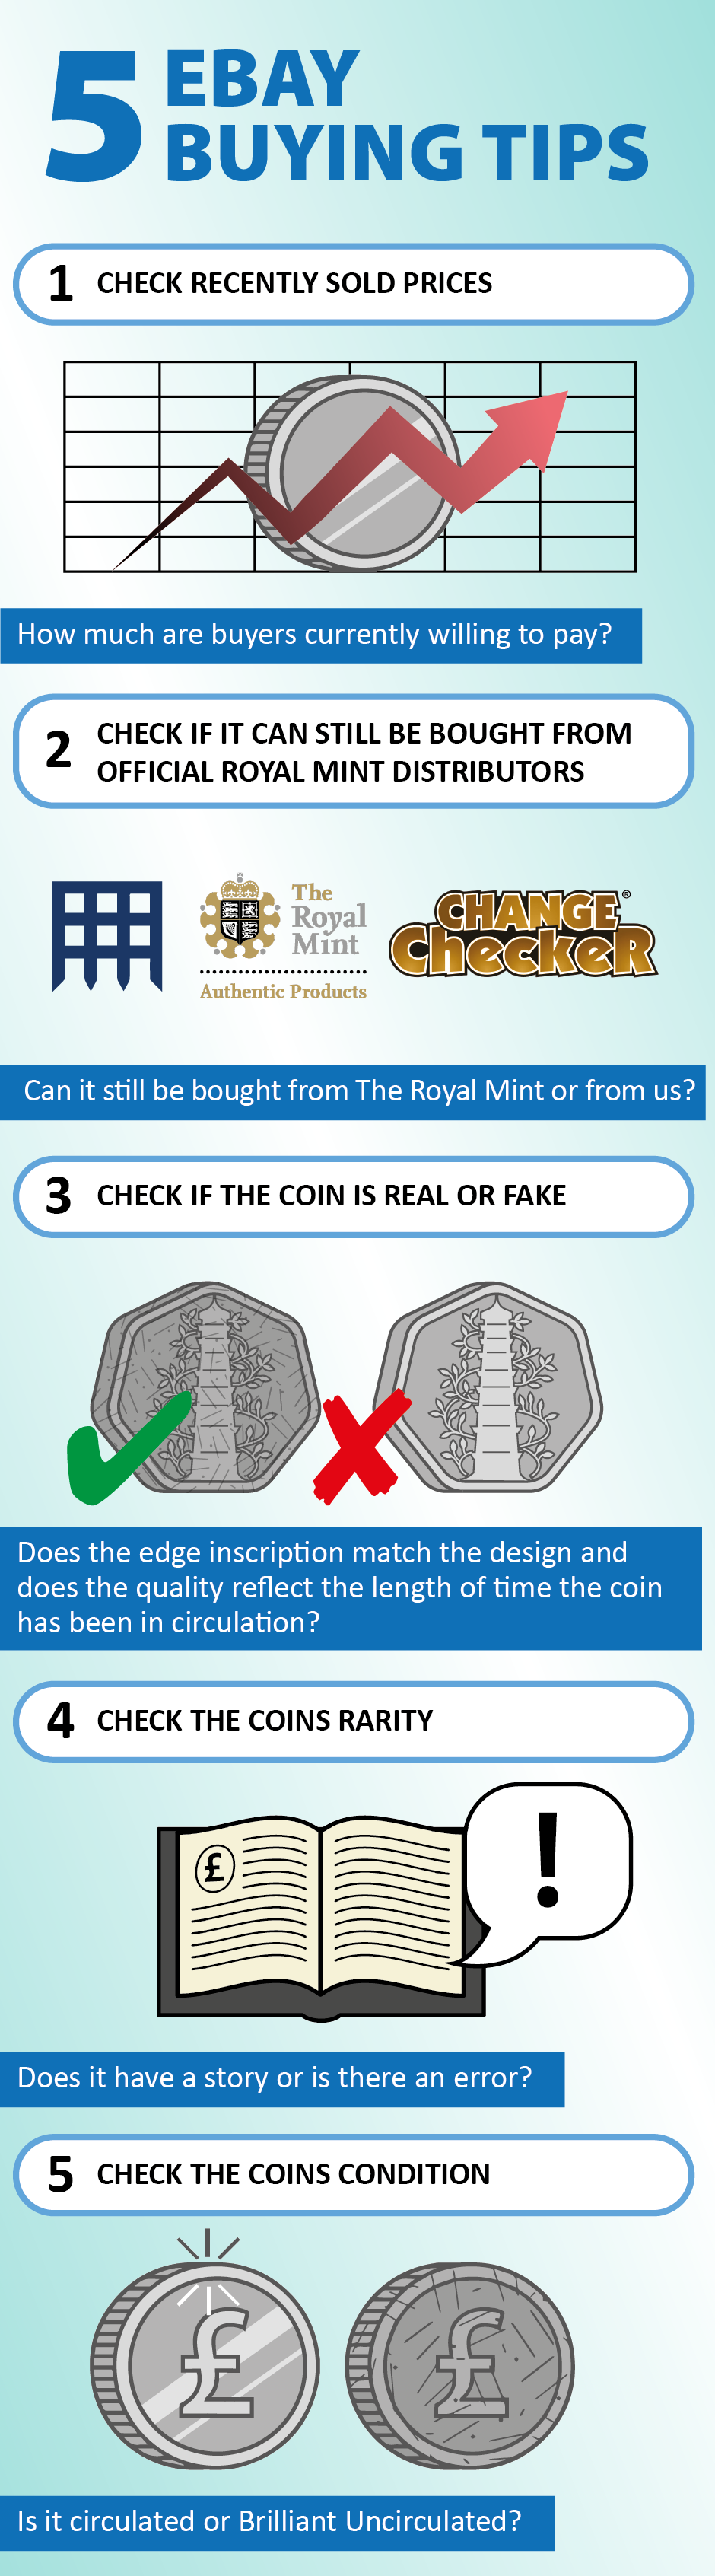 Change Checker 5 Point Guide eBay Blog Infographic - How much is your coin really worth? Debunking eBay coin price myths...